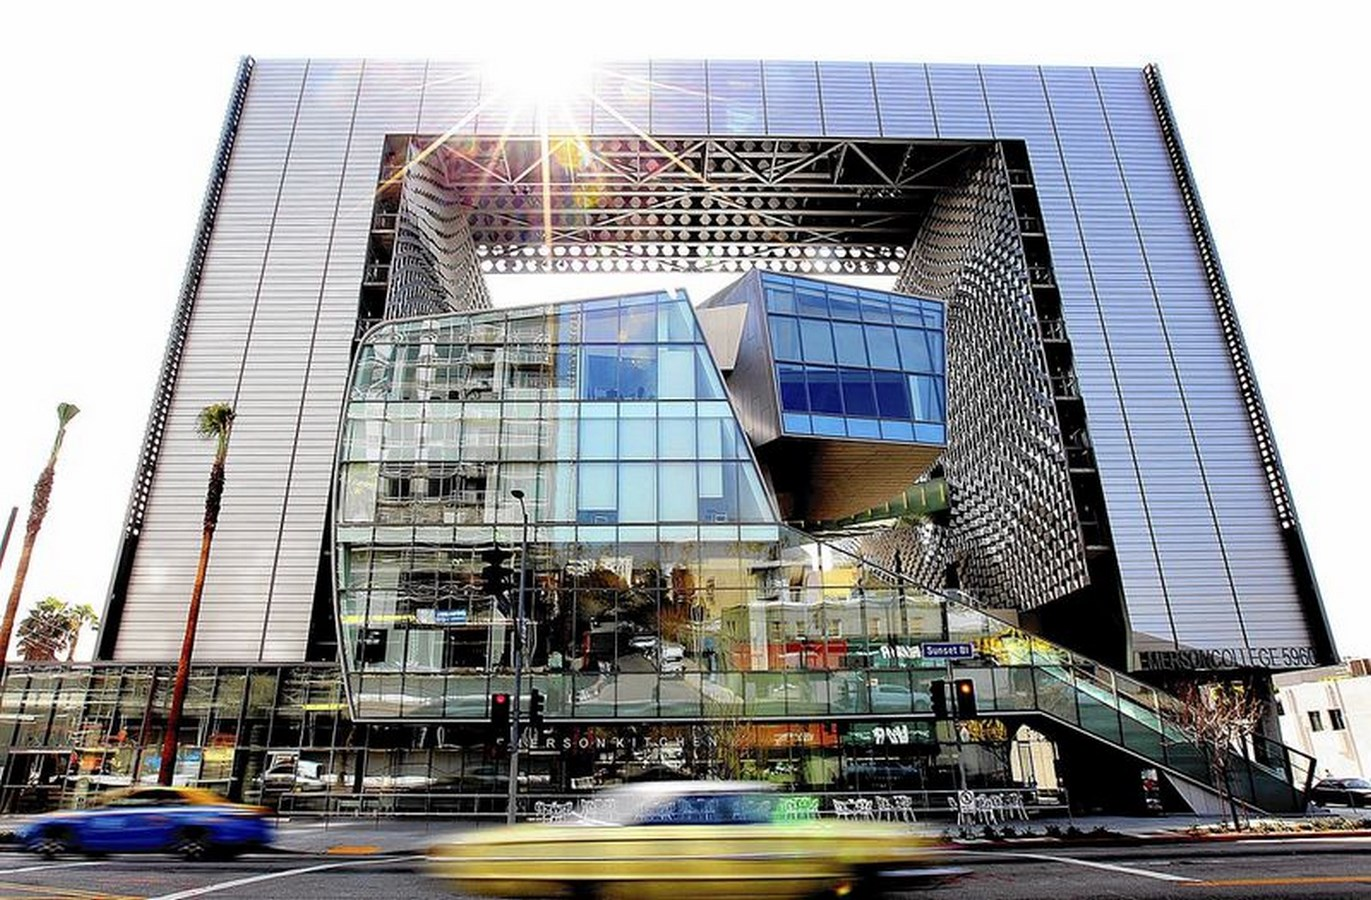 100 Best Architecture Projects of the 21st Century - Emerson college